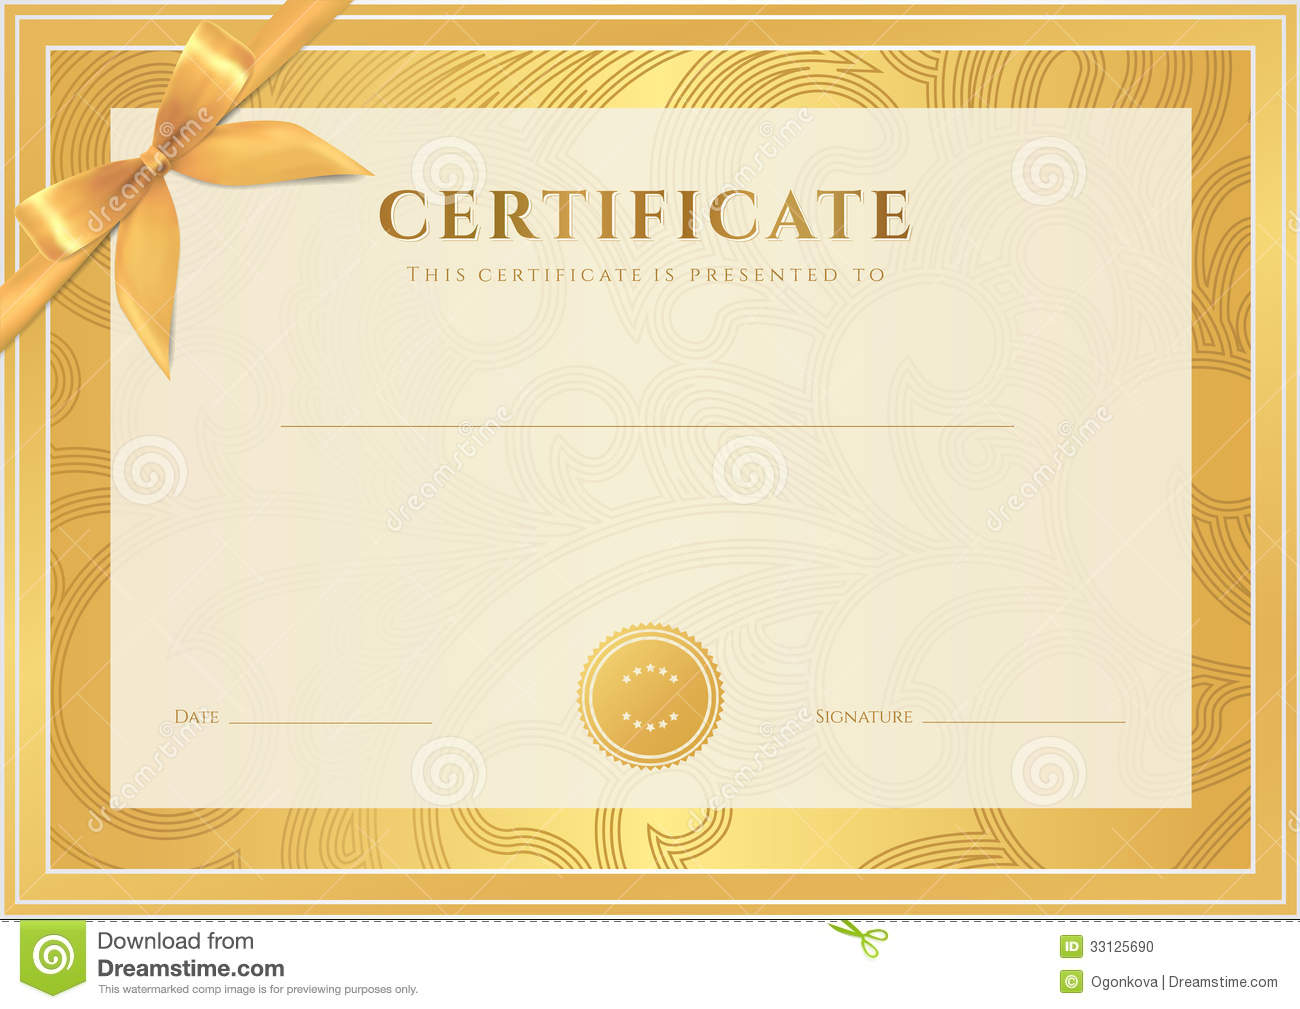 certificate background templates for word - certificate diploma template gold award pattern stock